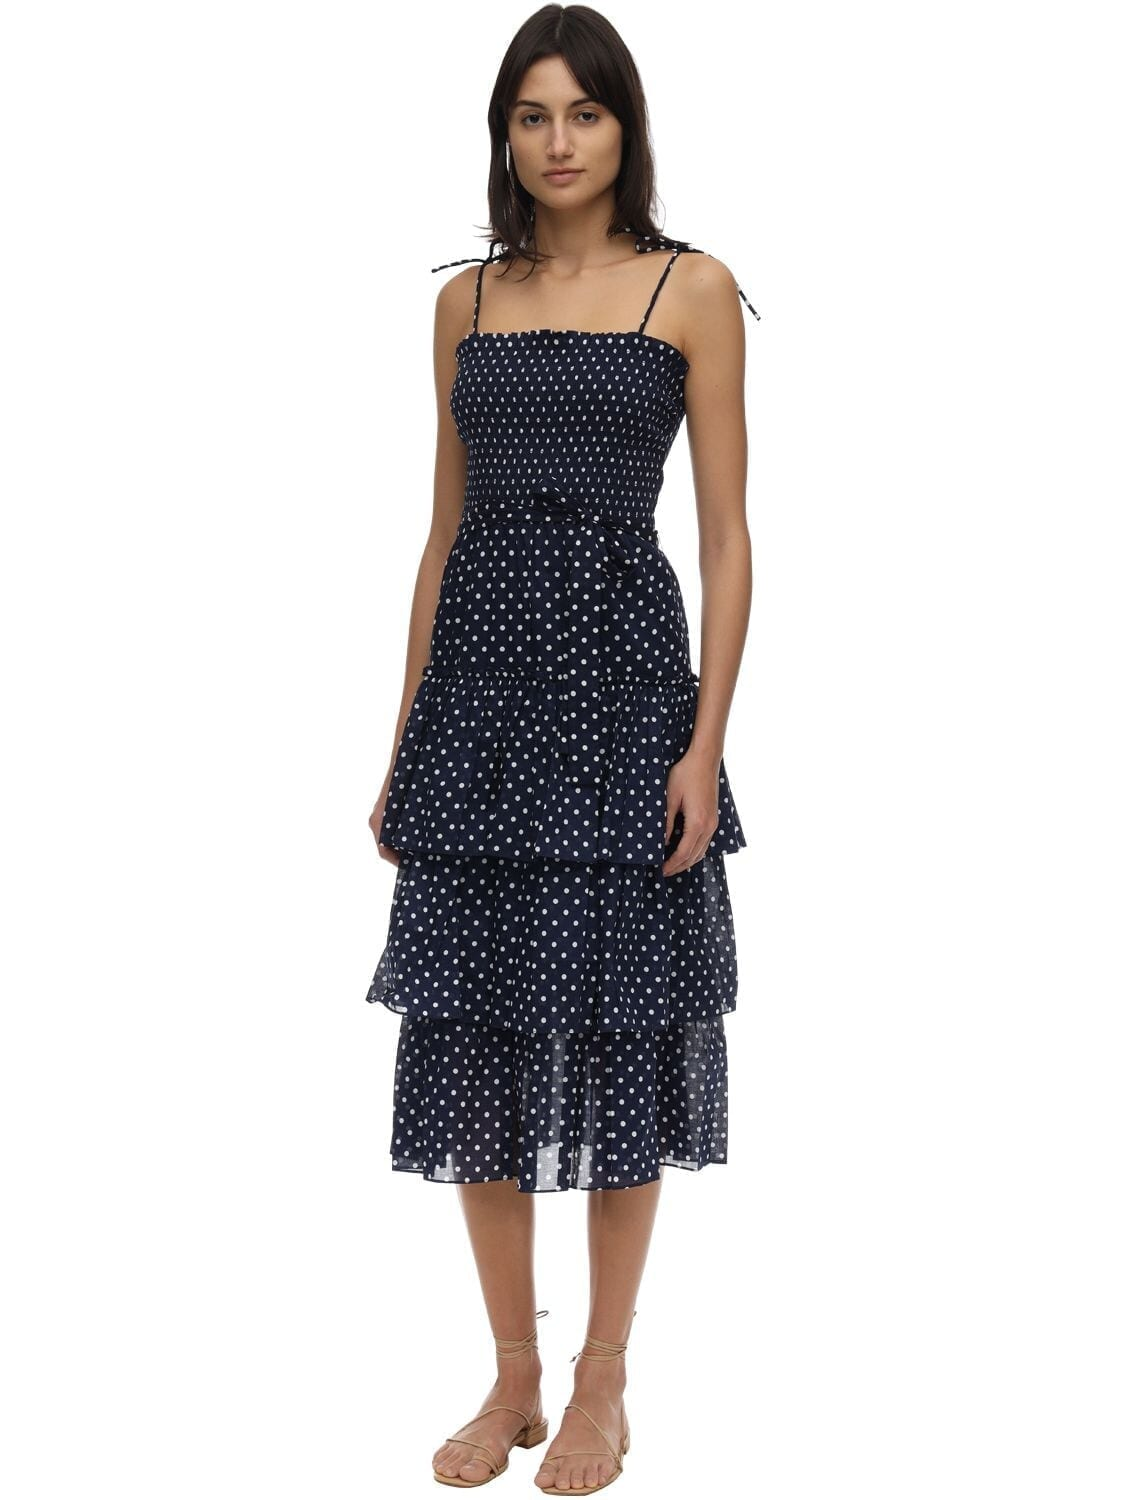 TORY BURCH Ruffled Polka Dot Cotton Voile Dress